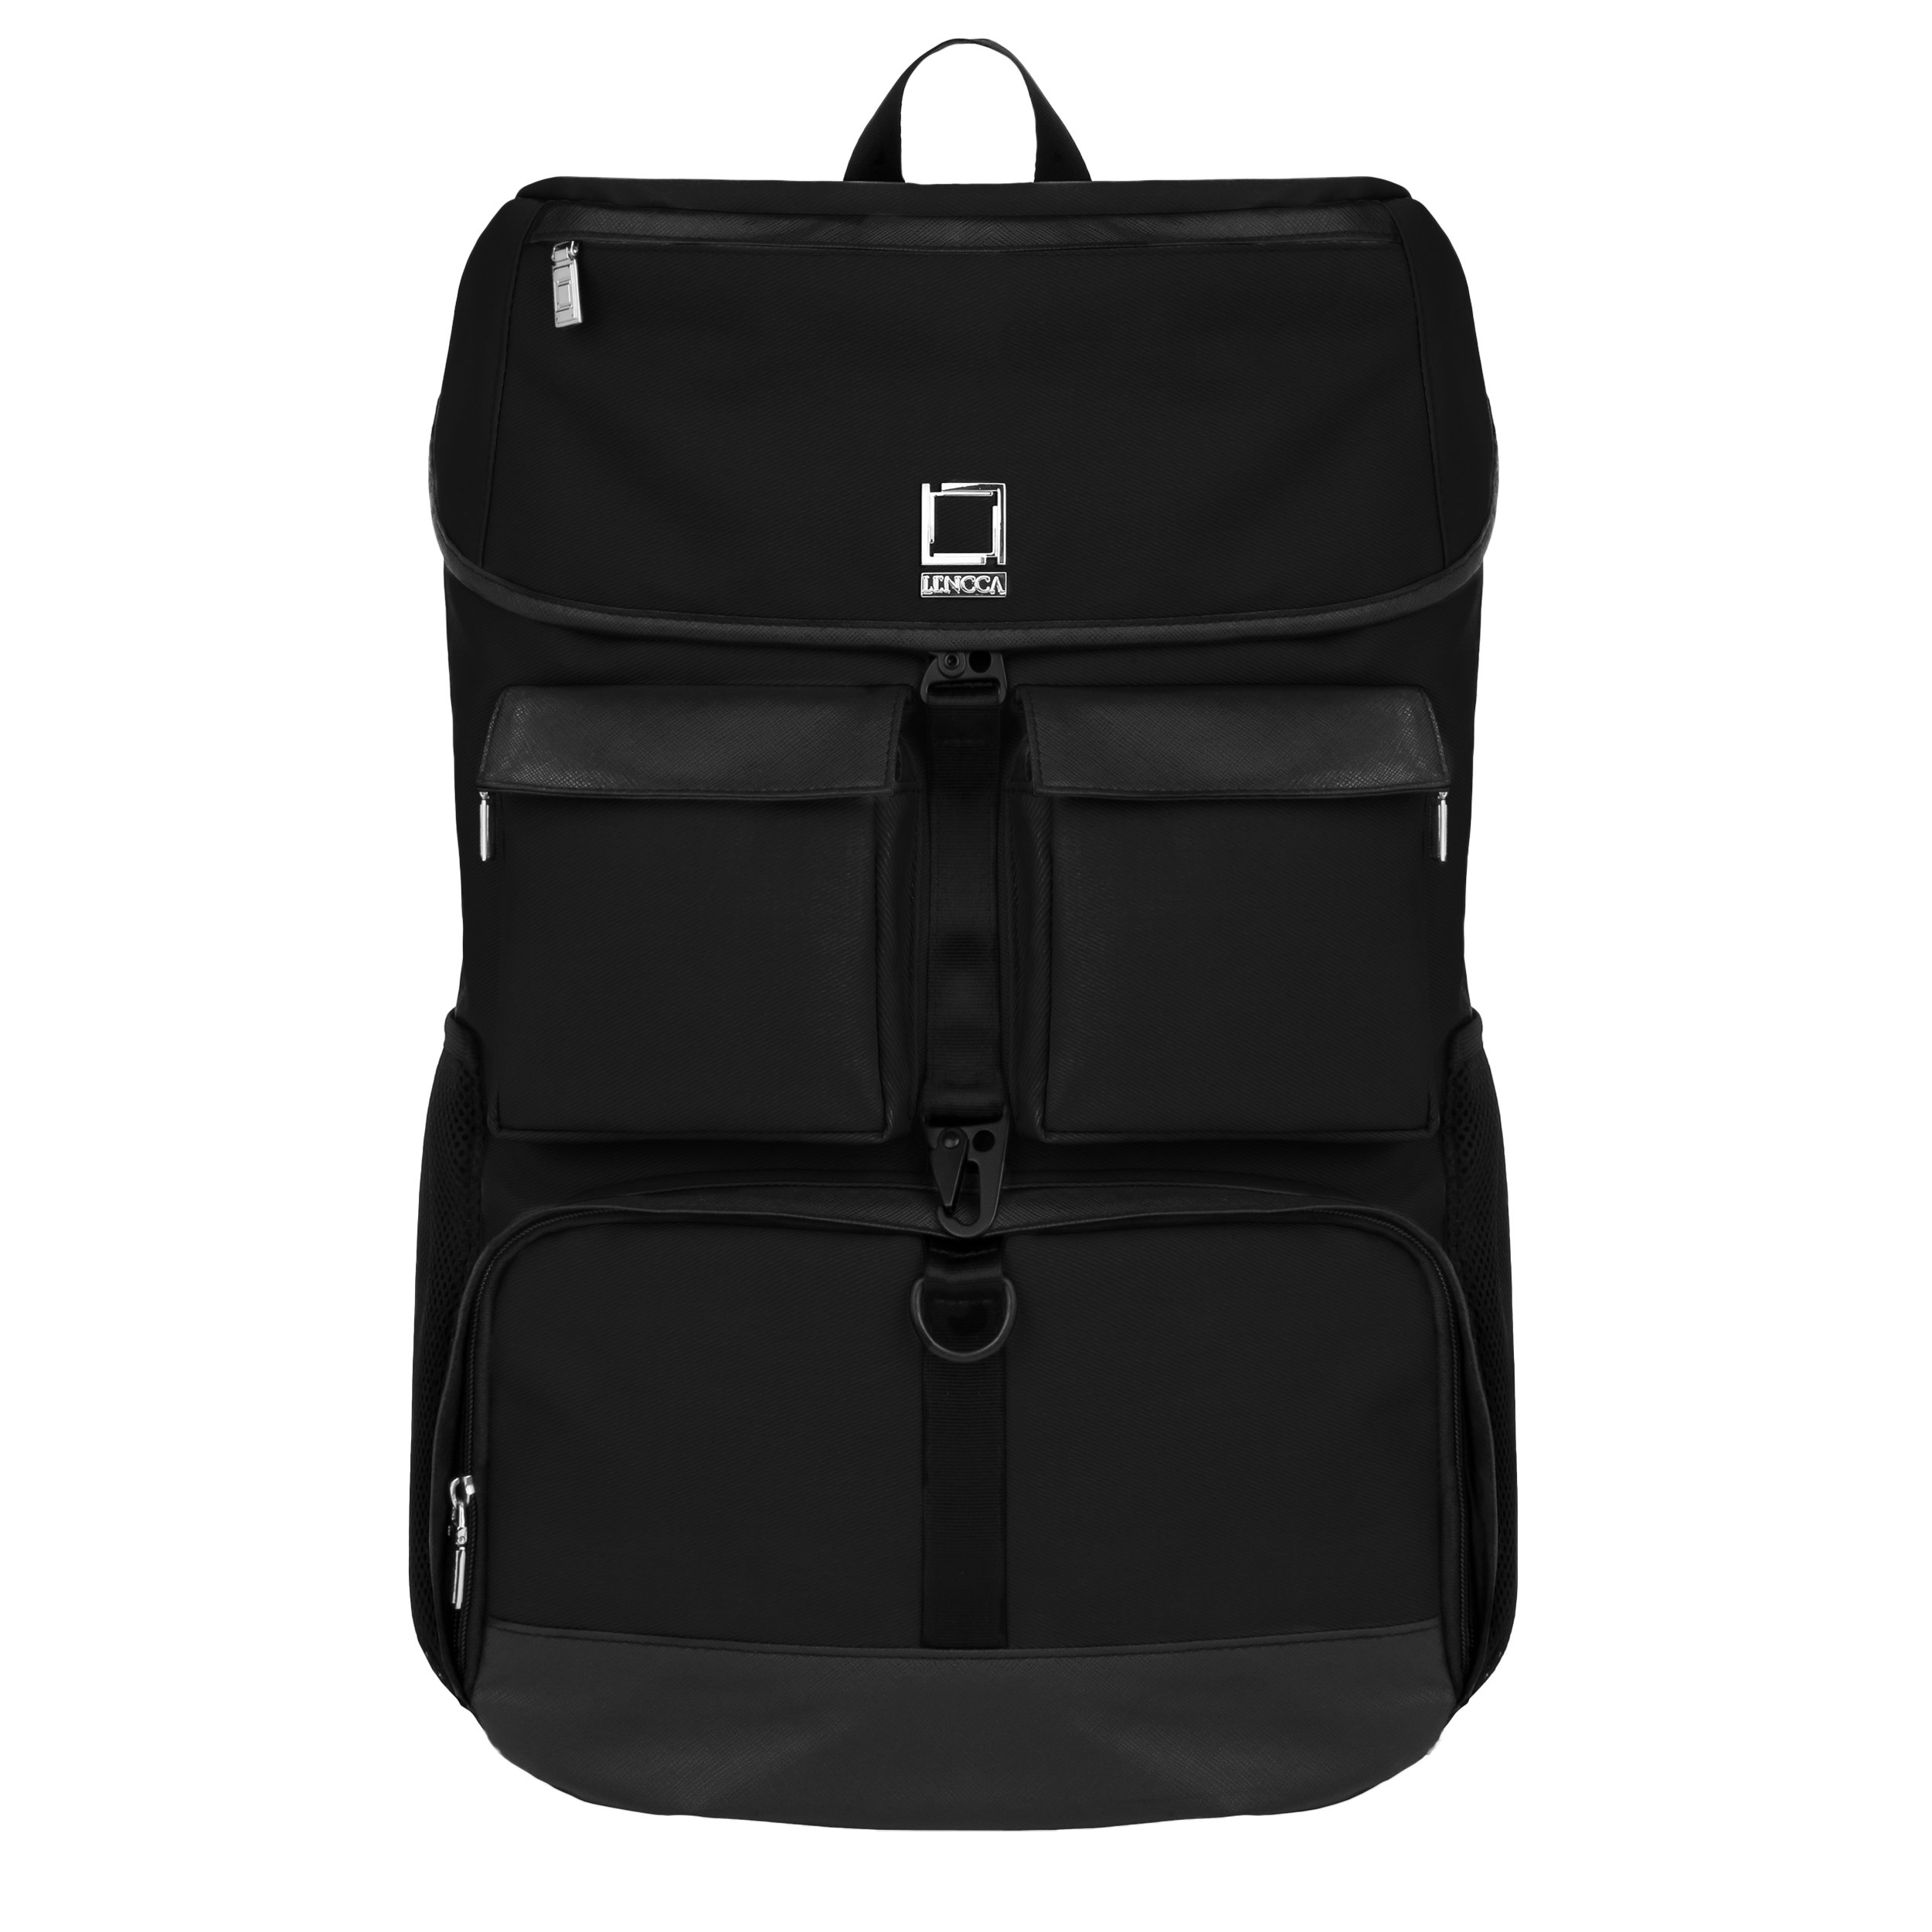 Lencca Logan Backpack for Samsung Galaxy View 18.4 inch Tablets (Classic Black)